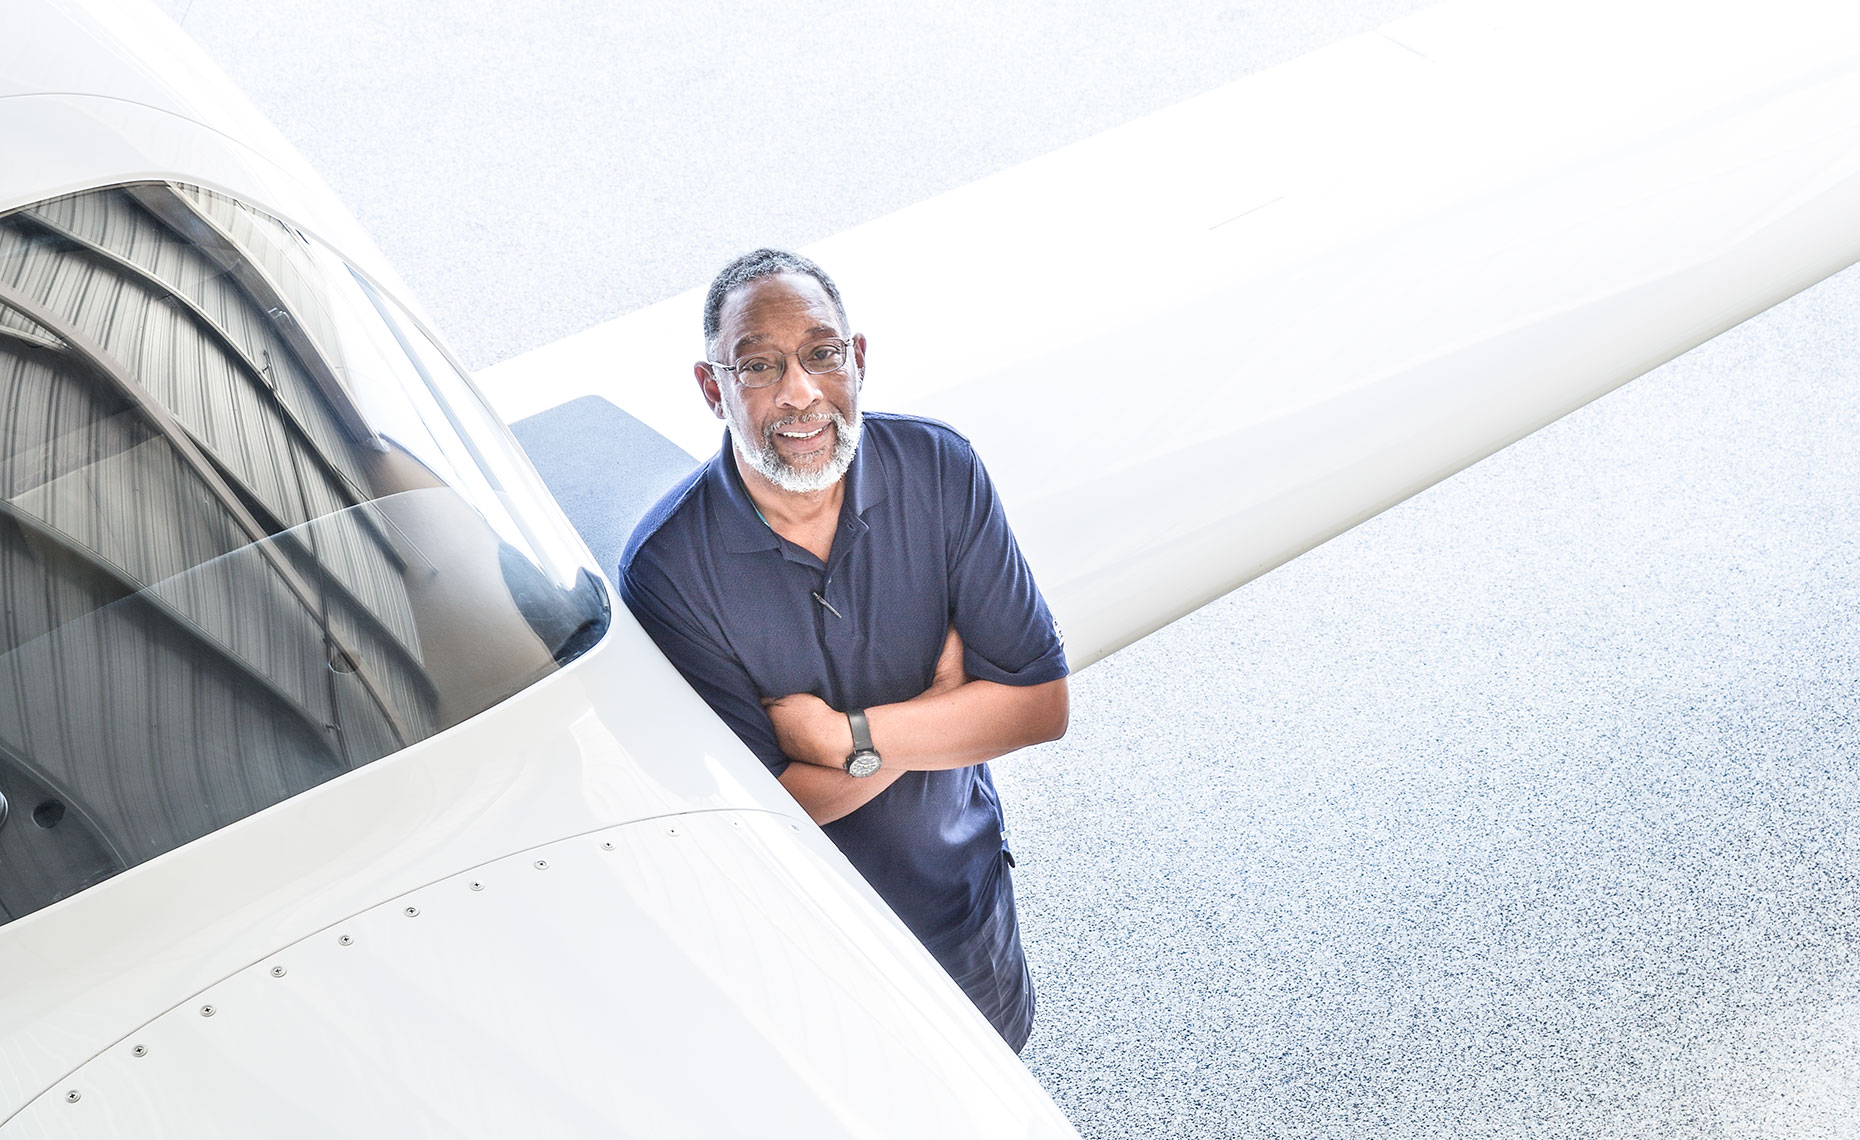 Pilot Reginald Webb with Lancair IV-P